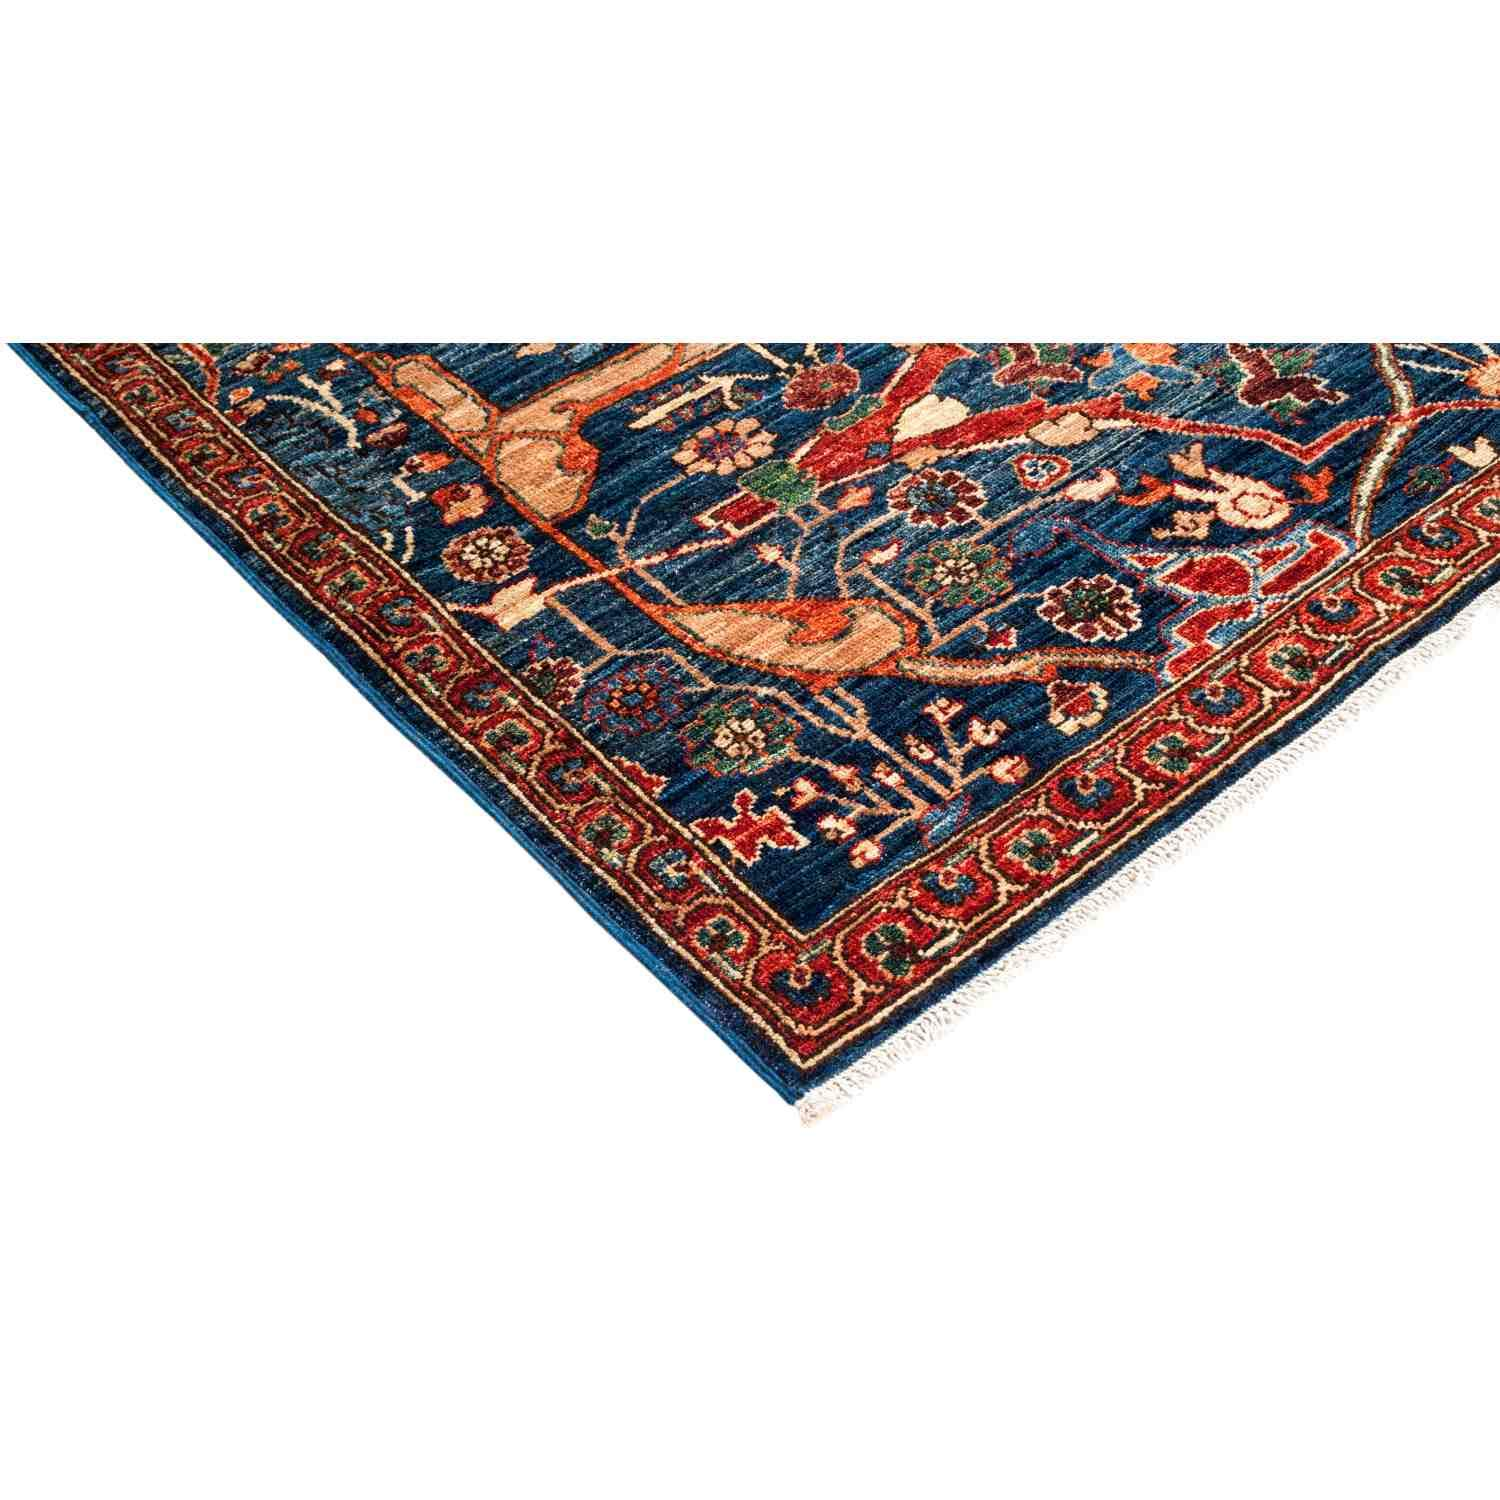 Navy Solo Rugs Serapi Hand Knotted Area Rug 5 0 x 7 10